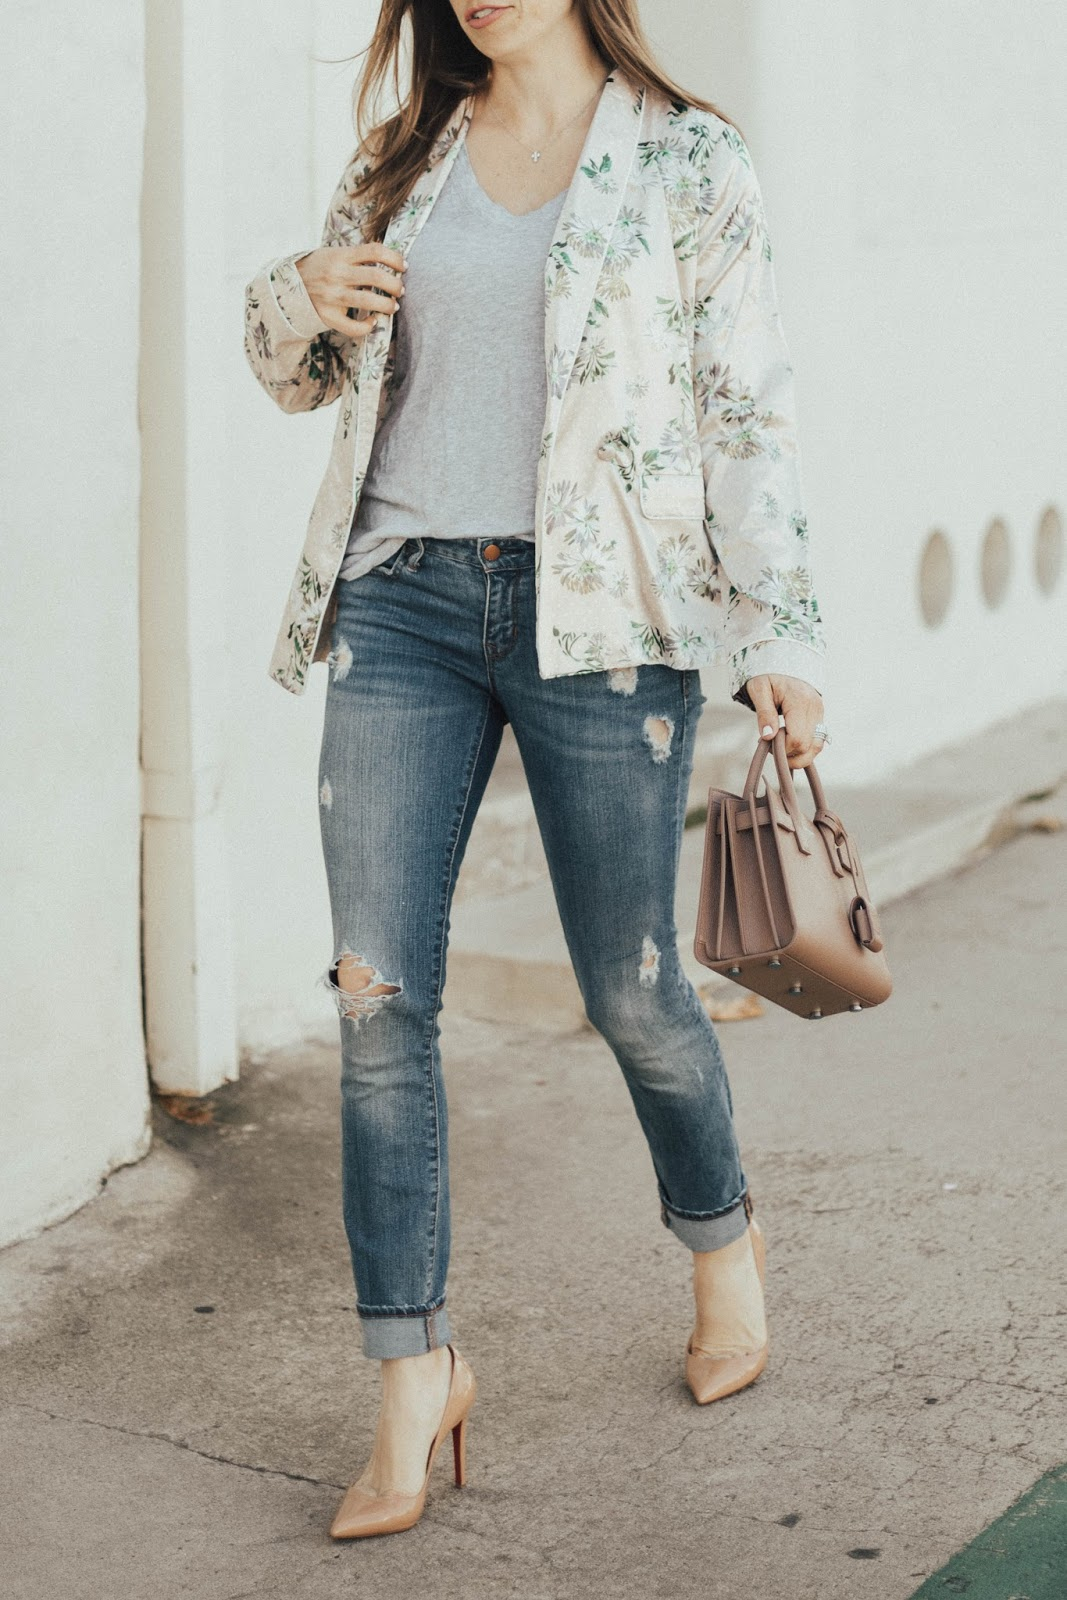 pajama jacket and distressed jeans outfit